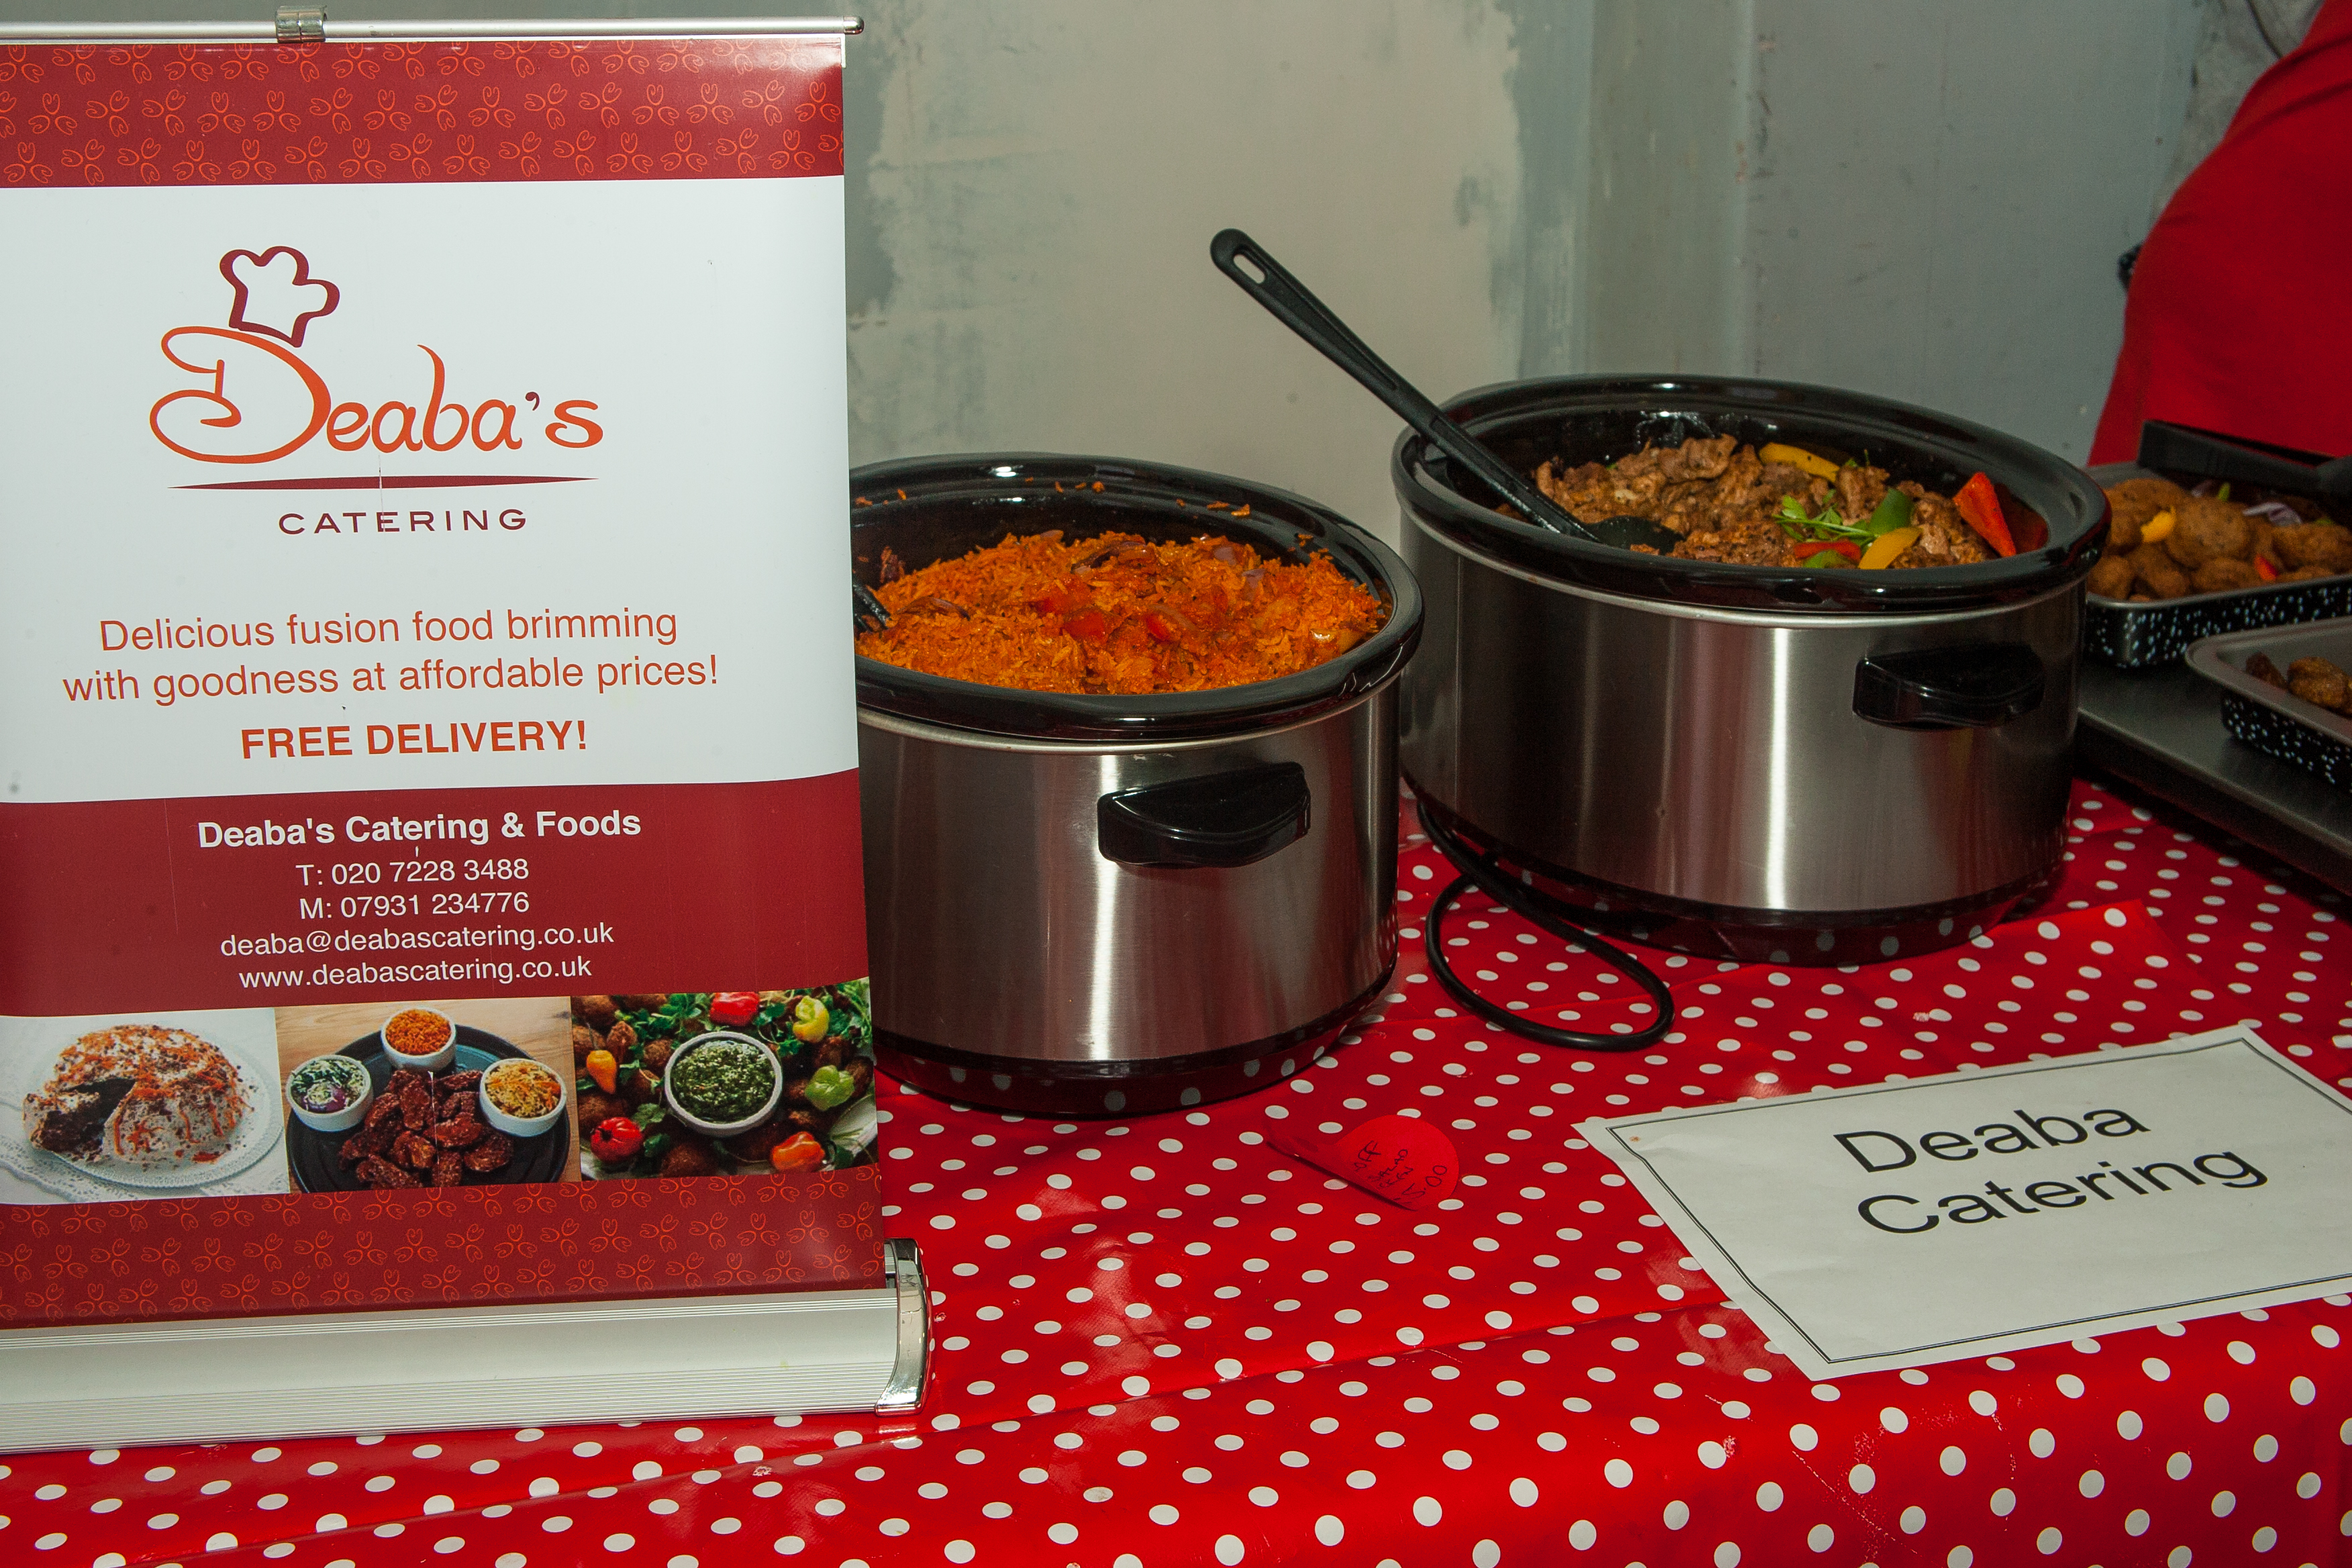 Deaba's Catering